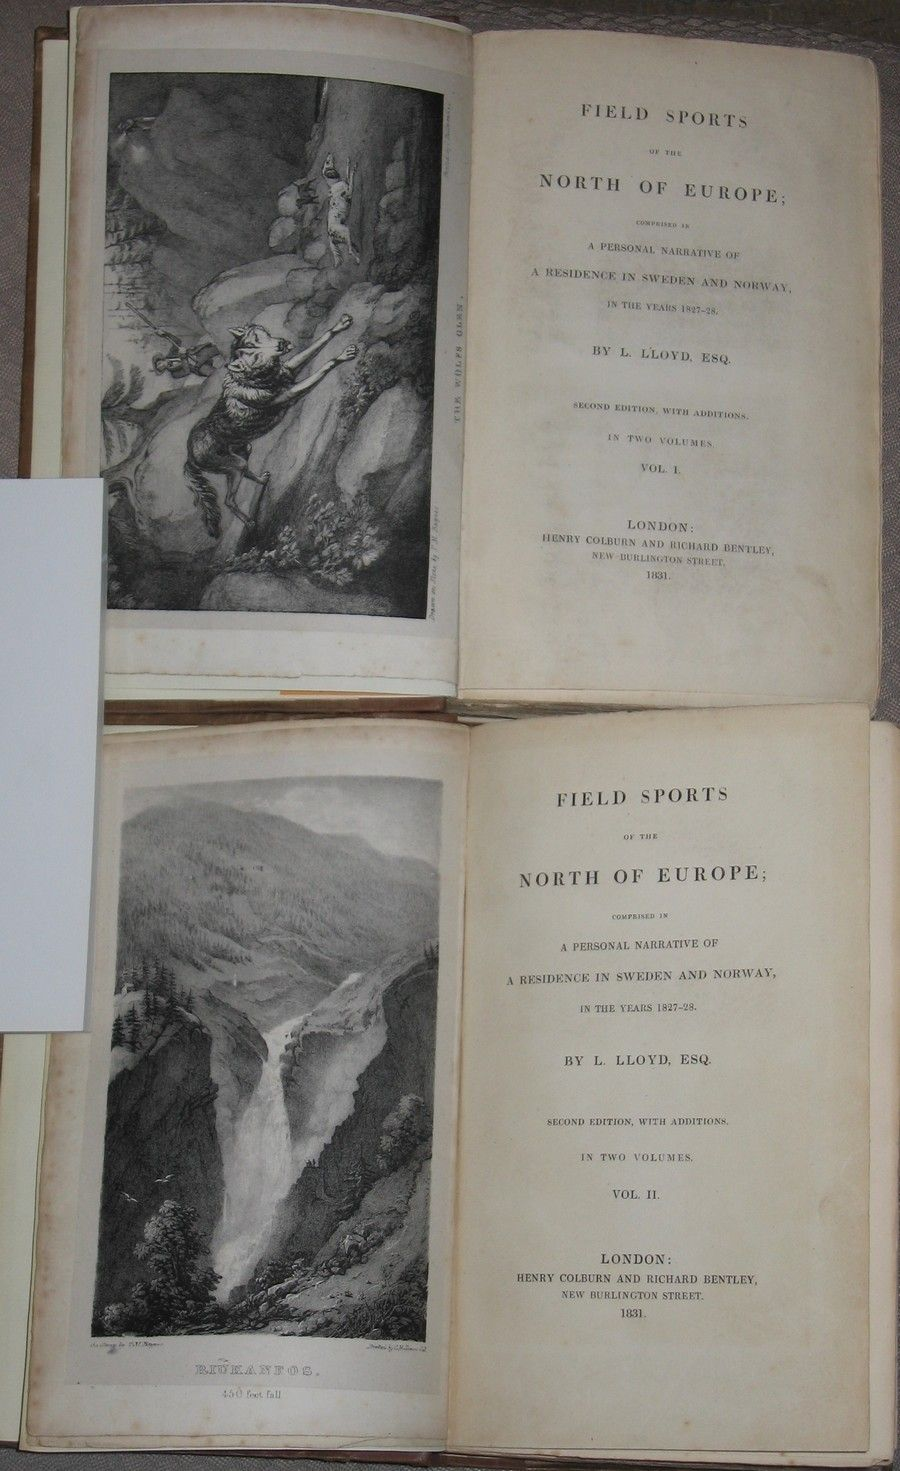 Llewellyn Lloyd: Field sports of the north of Europe (1831) - Oslo  - Llewellyn Lloyd: Field sports of the north of Europe (1831)  Lloyd, L. (Llewellyn): Field sports of the north of Europe; comprised in a personal narrative of a residence in Sweden and Norway, in the years 1827-28. Second edition, with ad - Oslo